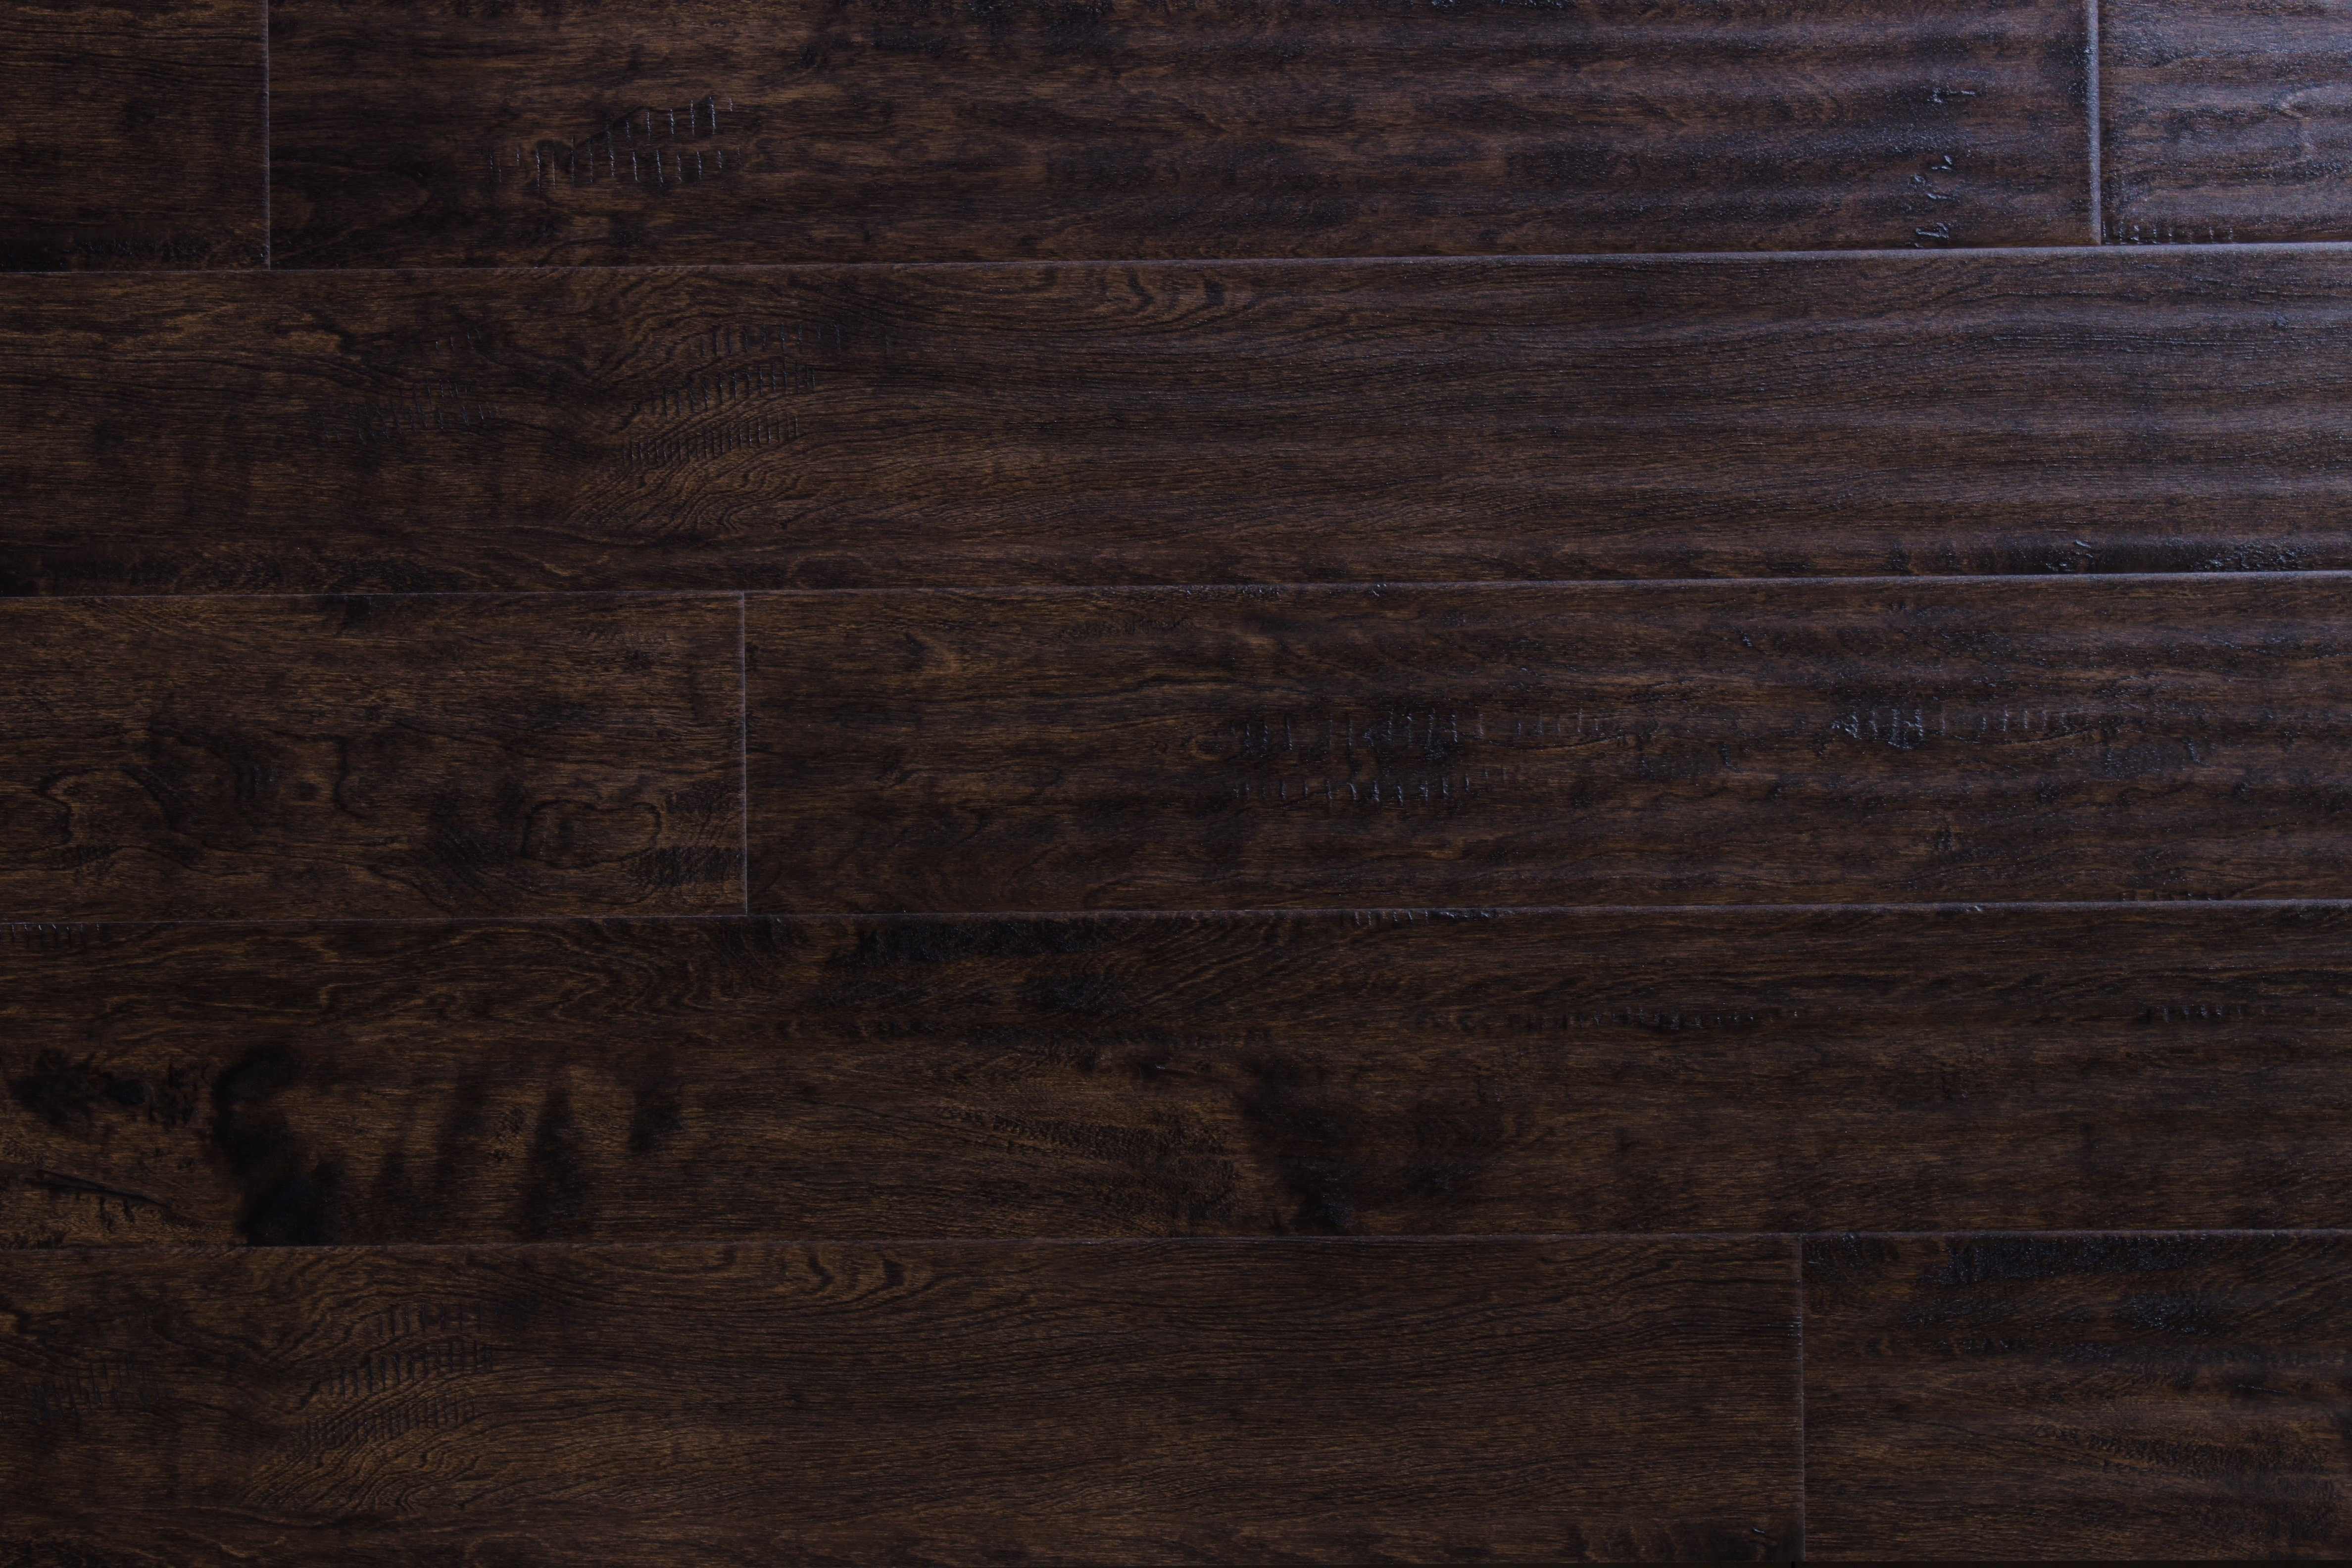 hardwood flooring sale toronto of wood flooring free samples available at builddirecta for tailor multi gb 5874277bb8d3c